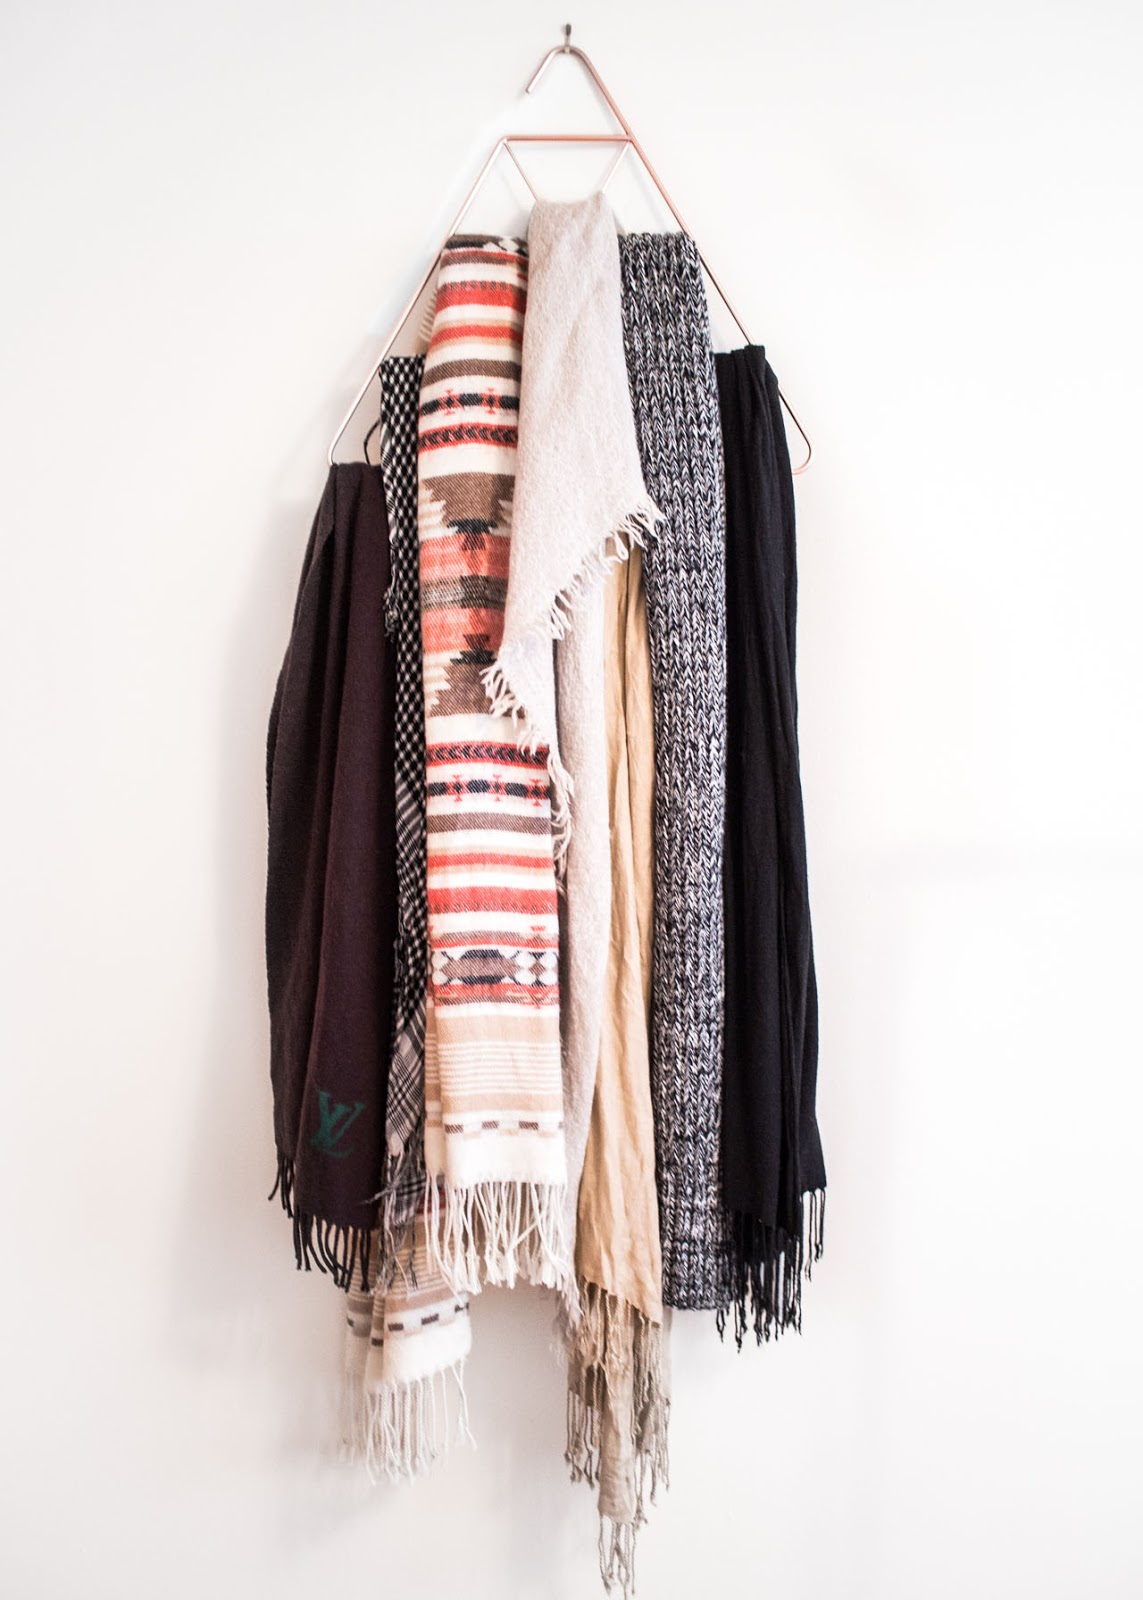 Scarf hanger - In My Dreams - Canadian Fashion Blogger